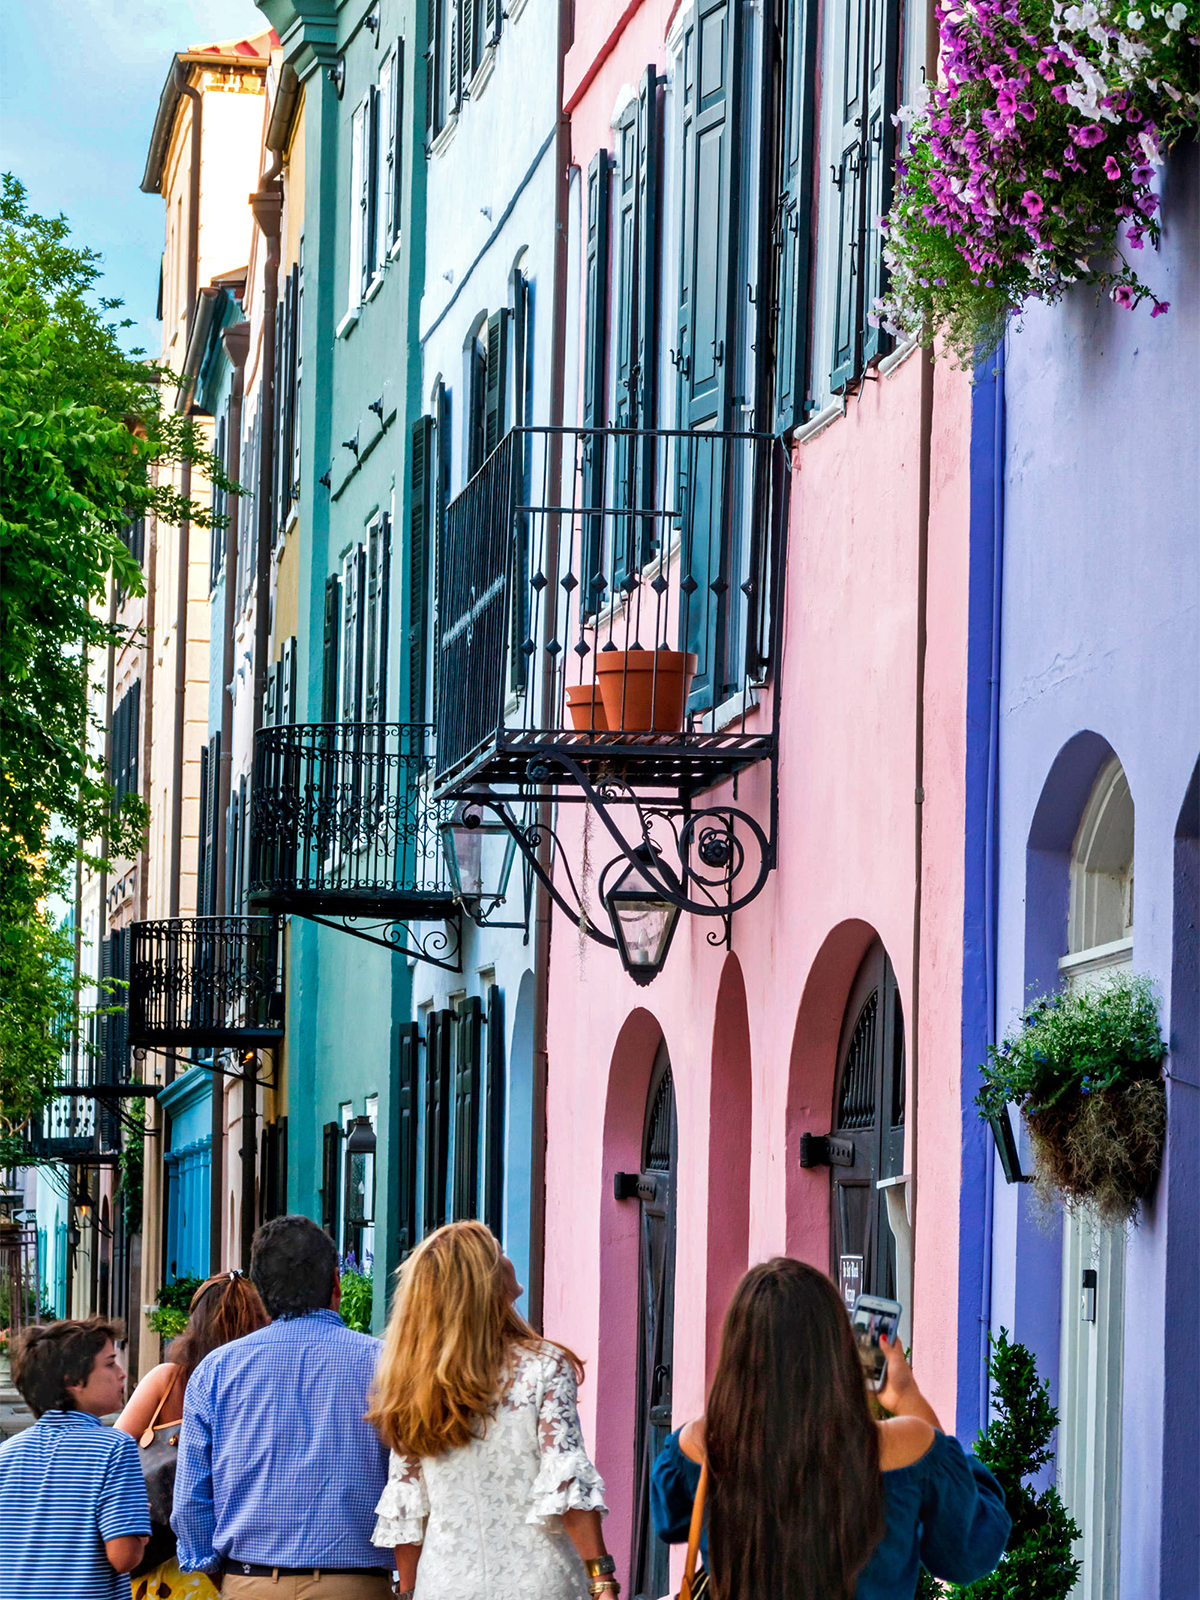 charleston colorful buildings and tourists